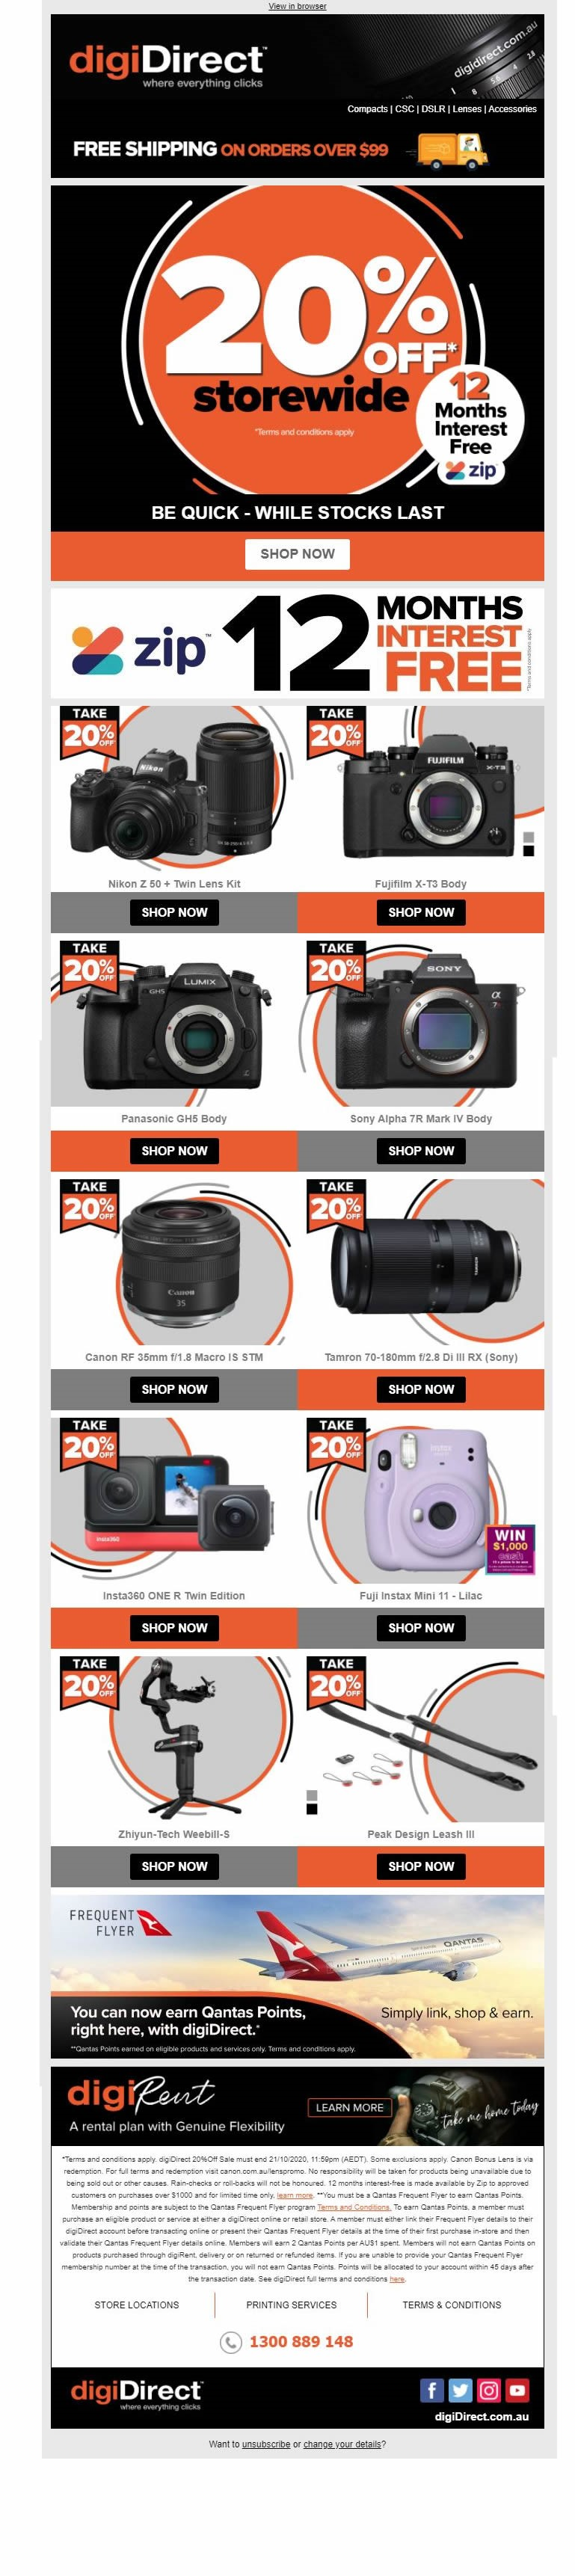 digiDirect storewide promotions